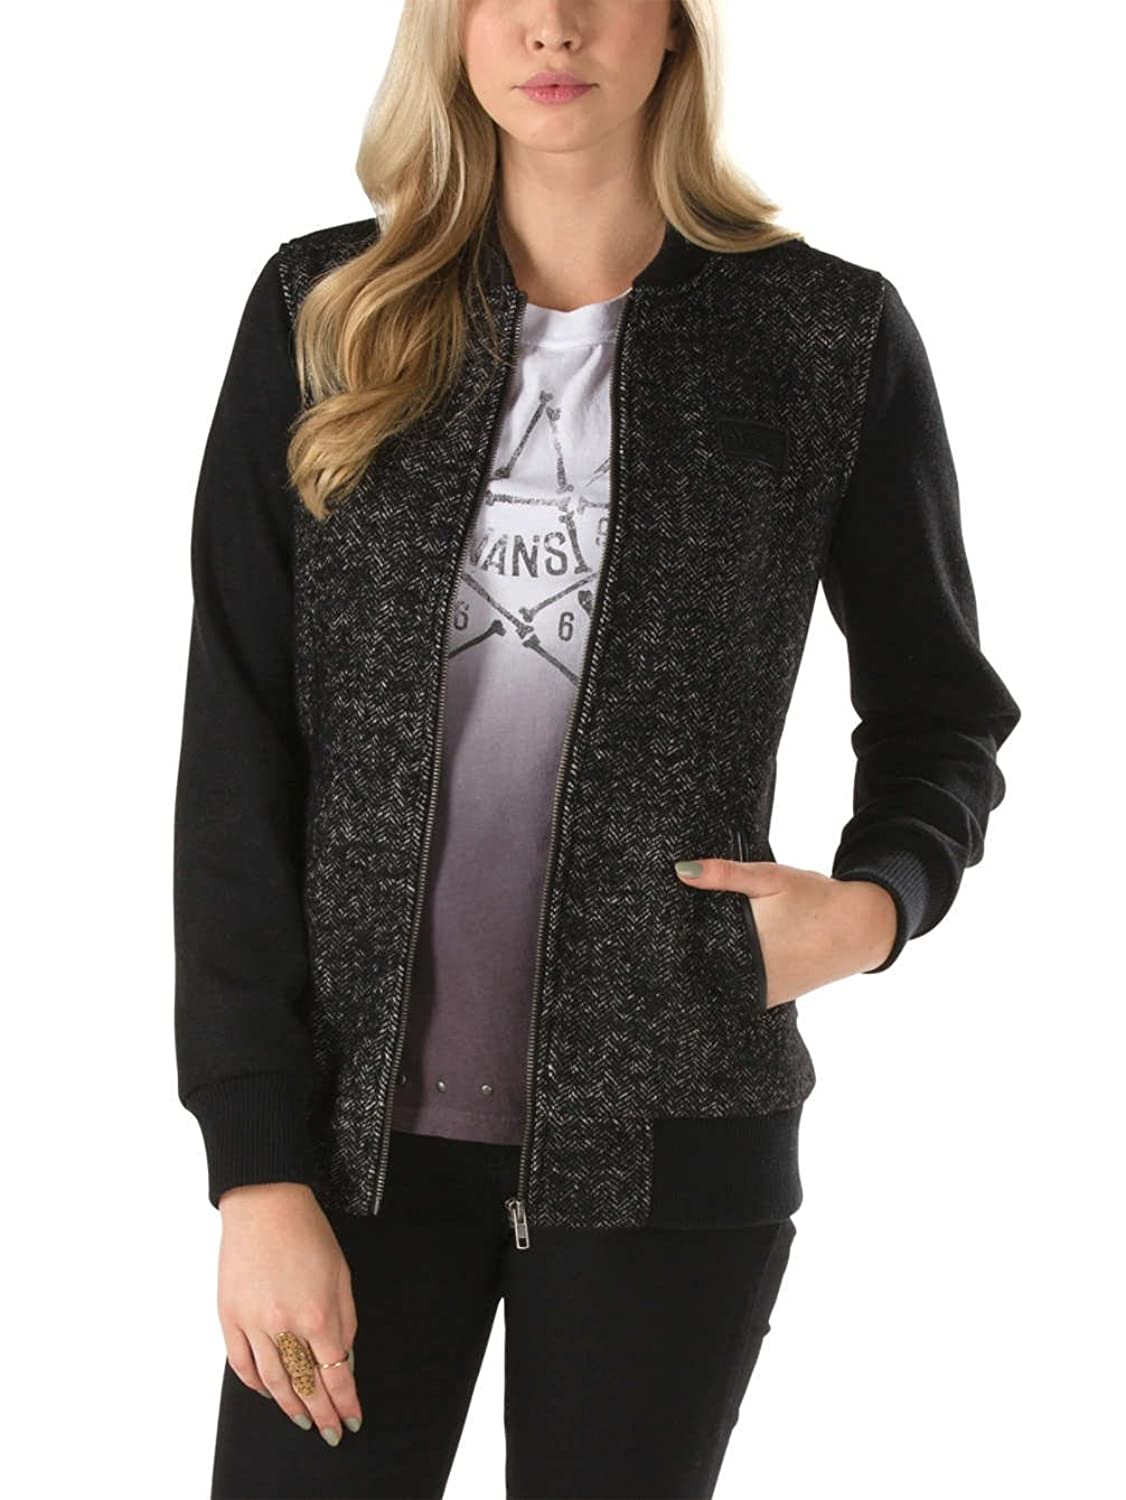 Amazon.com: Vans Womens Route 99 Varsity Jacket 047 S: Clothing